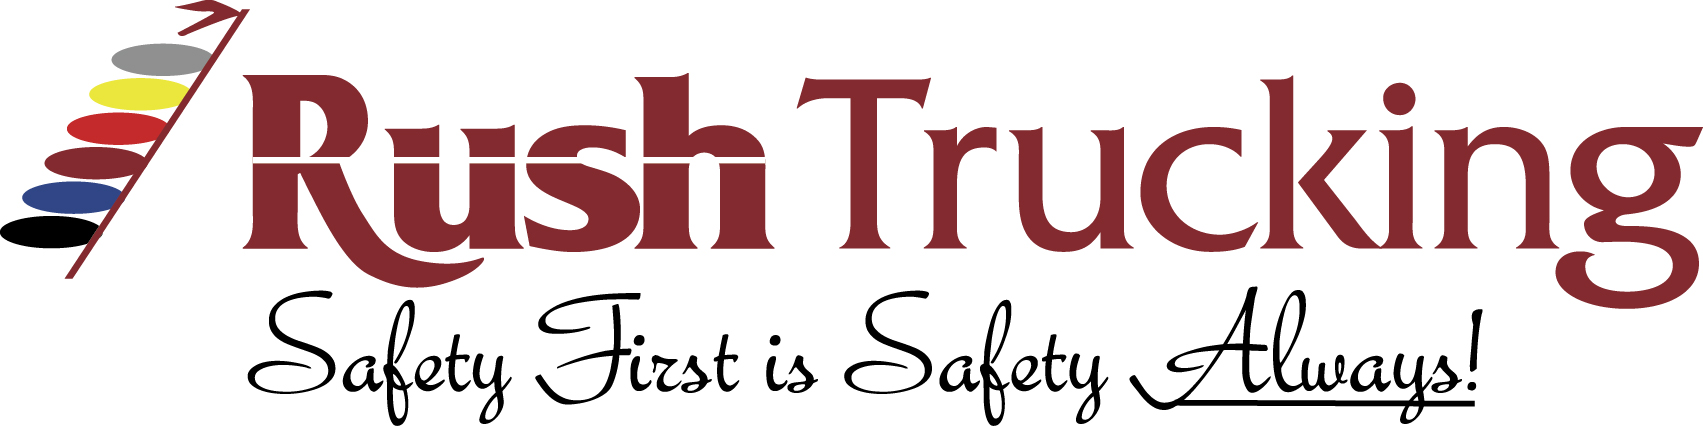 Rush Trucking logo